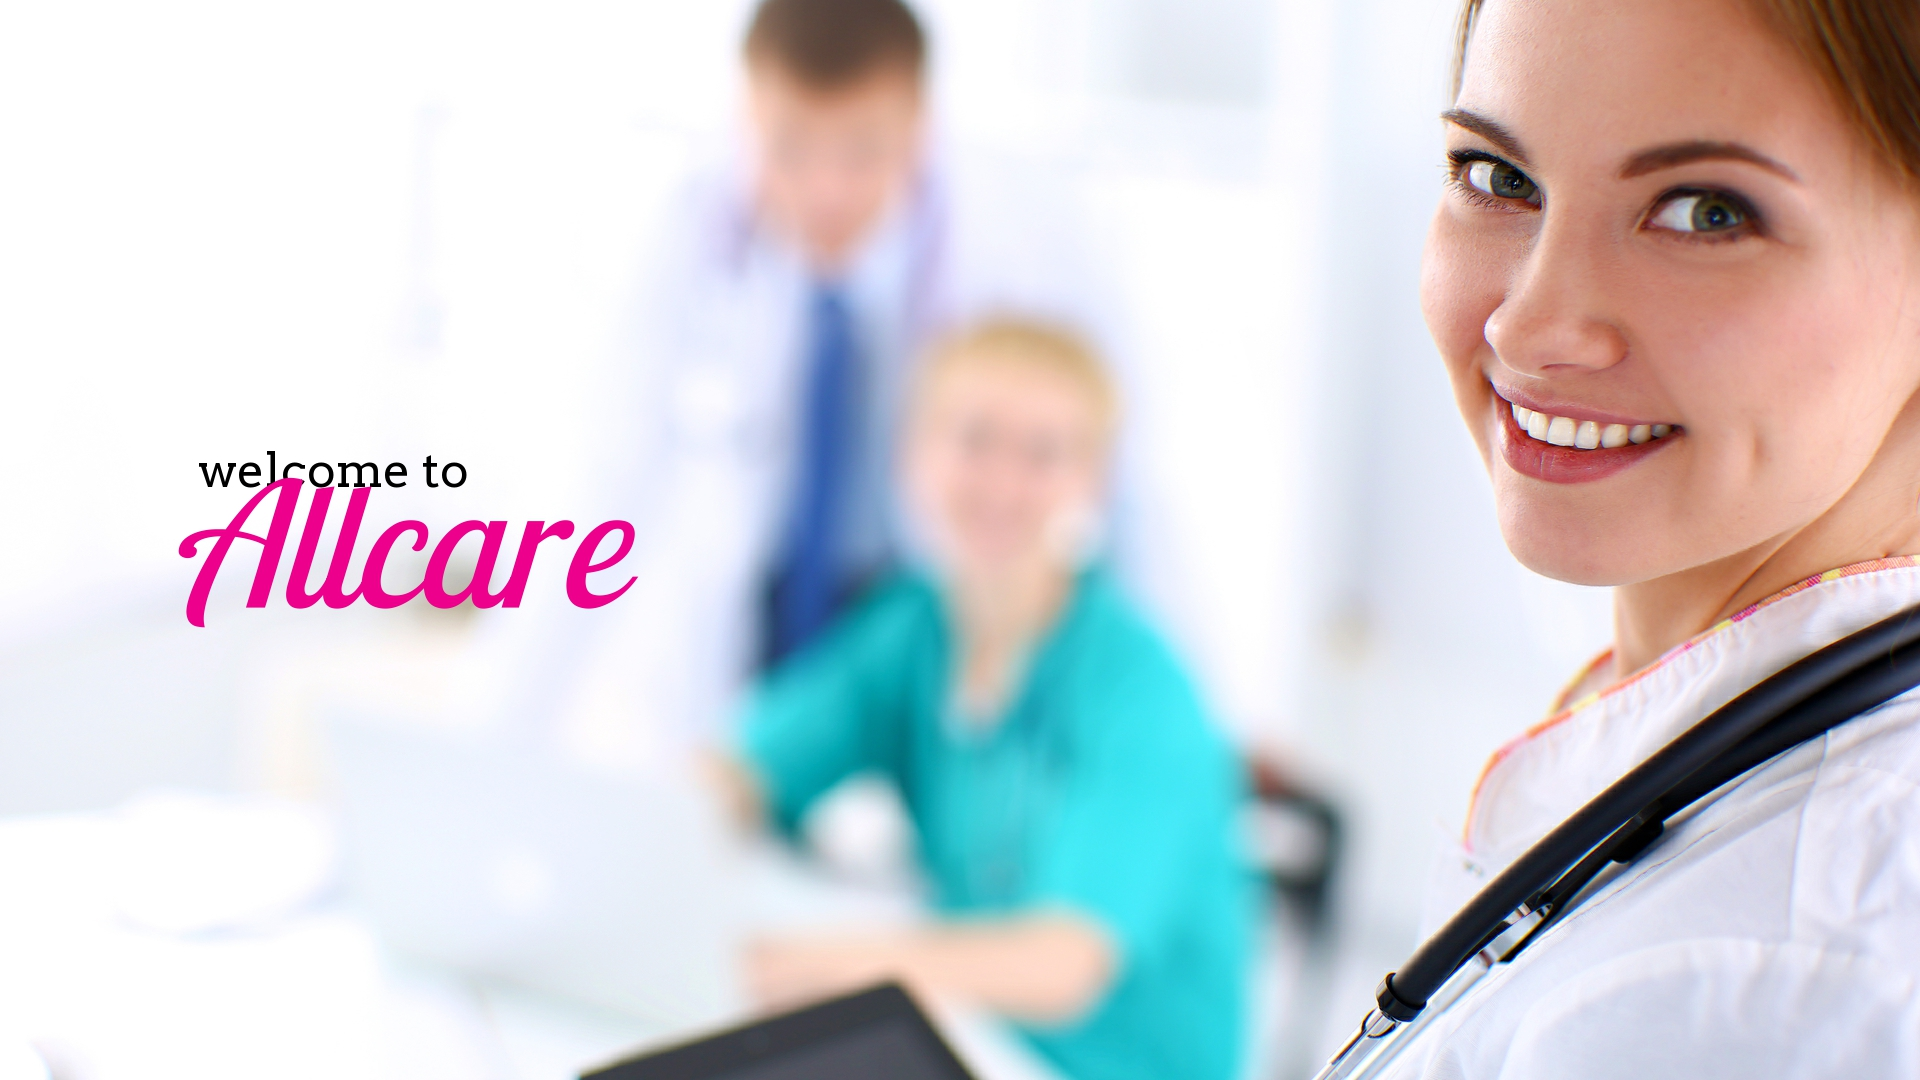 Allcare Nursing Services, Inc. image 0